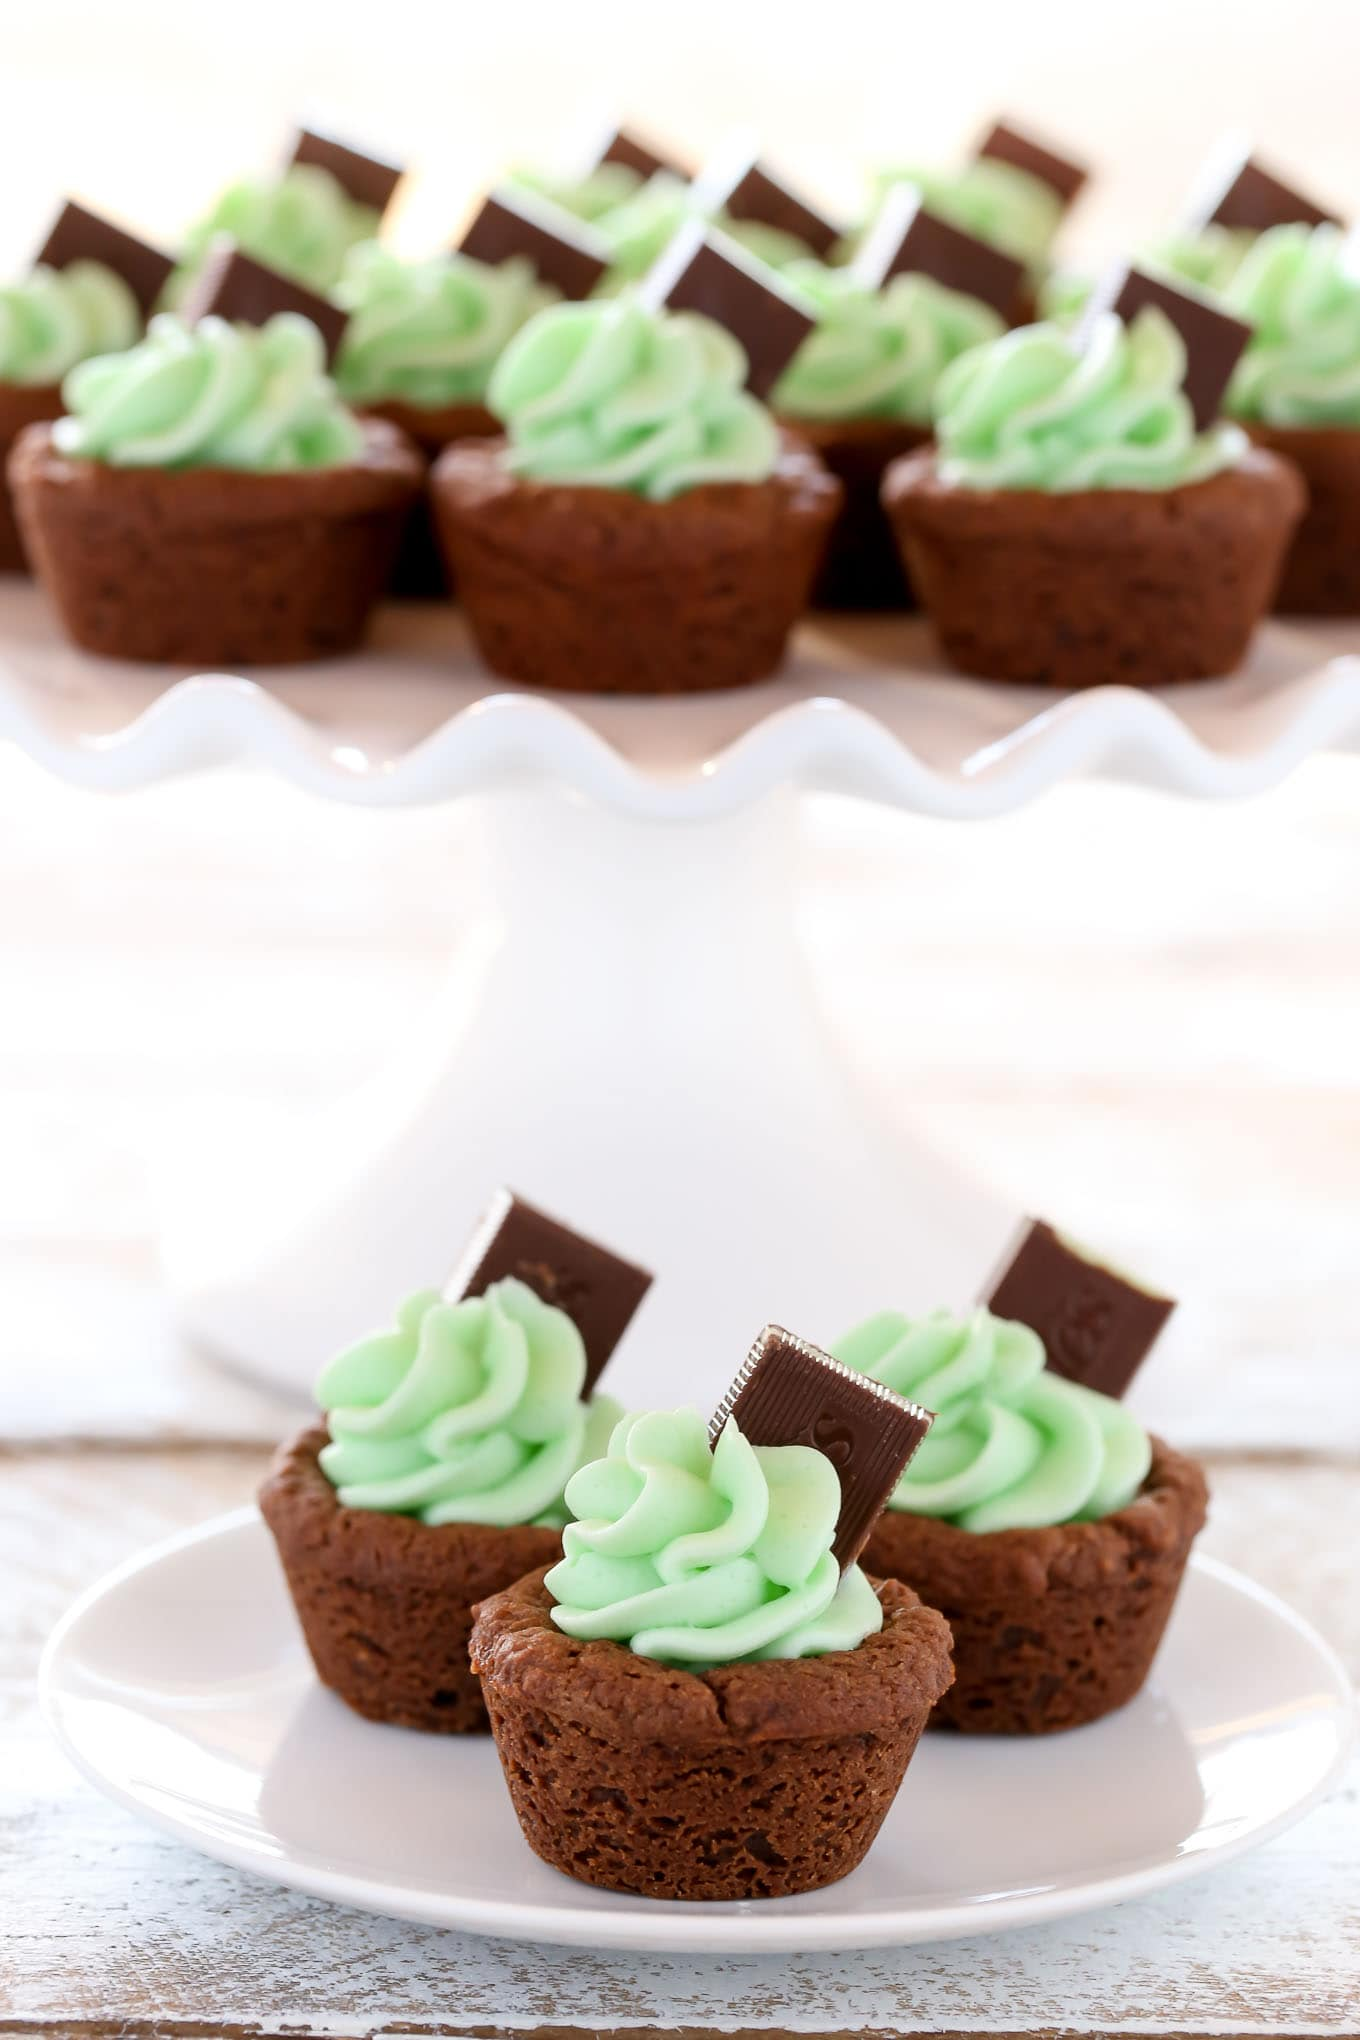 Chocolate cookie cups filled with an easy mint frosting and topped with an andes mint. These Mint Chocolate Cookie Cups are a perfect treat for St. Patrick's Day or mint chocolate lovers!